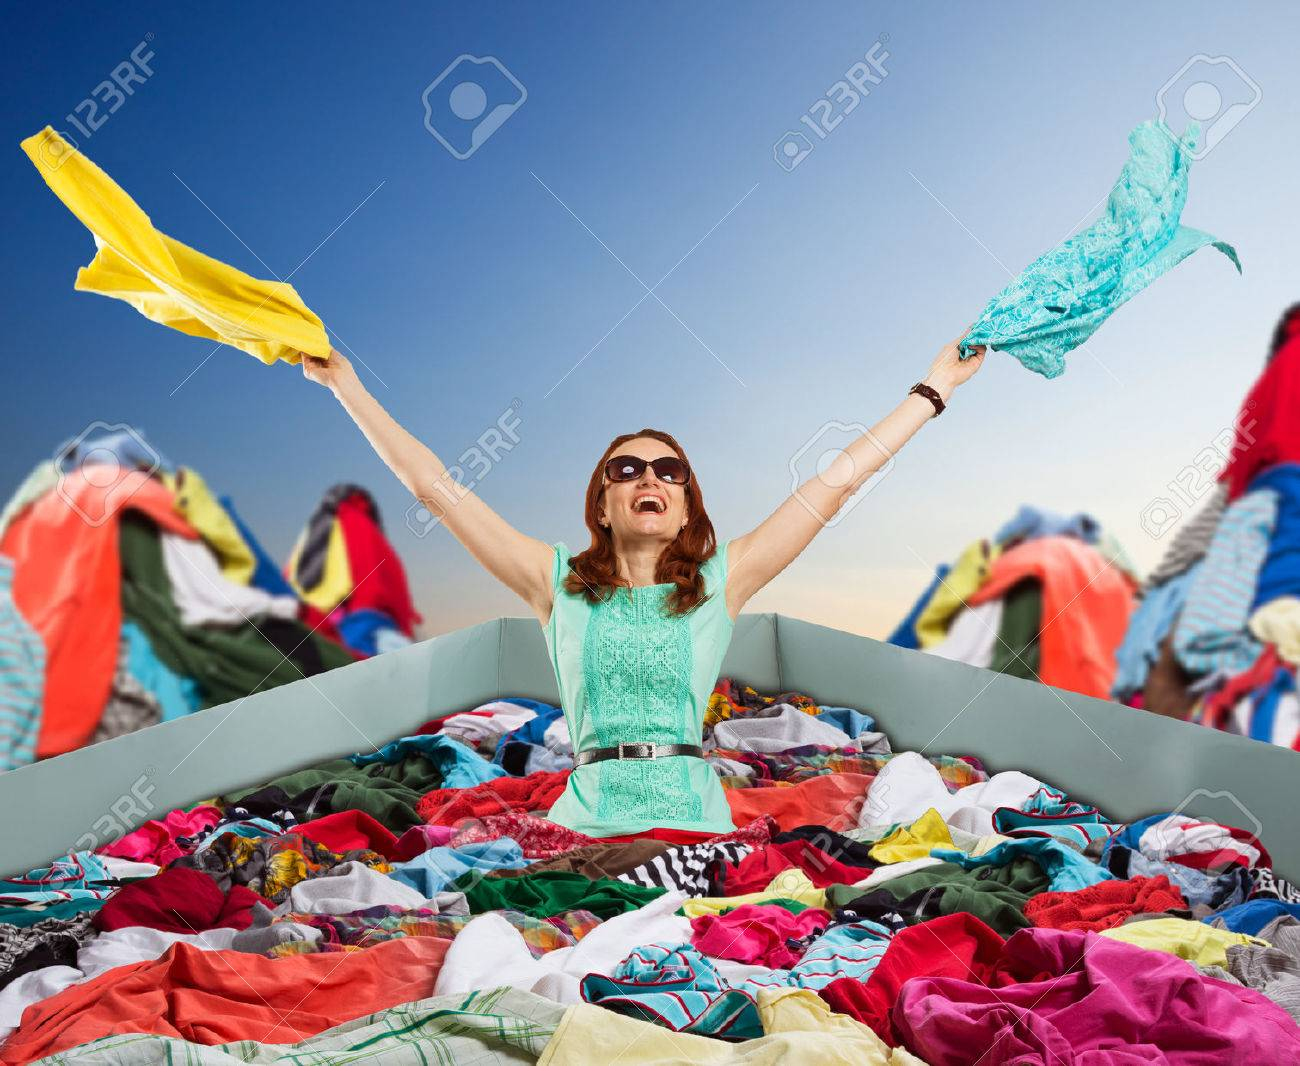 Young happy woman in sunglasses sits in the shopping bag among a big heap of clothes flinging things out Stock Photo - 44360044